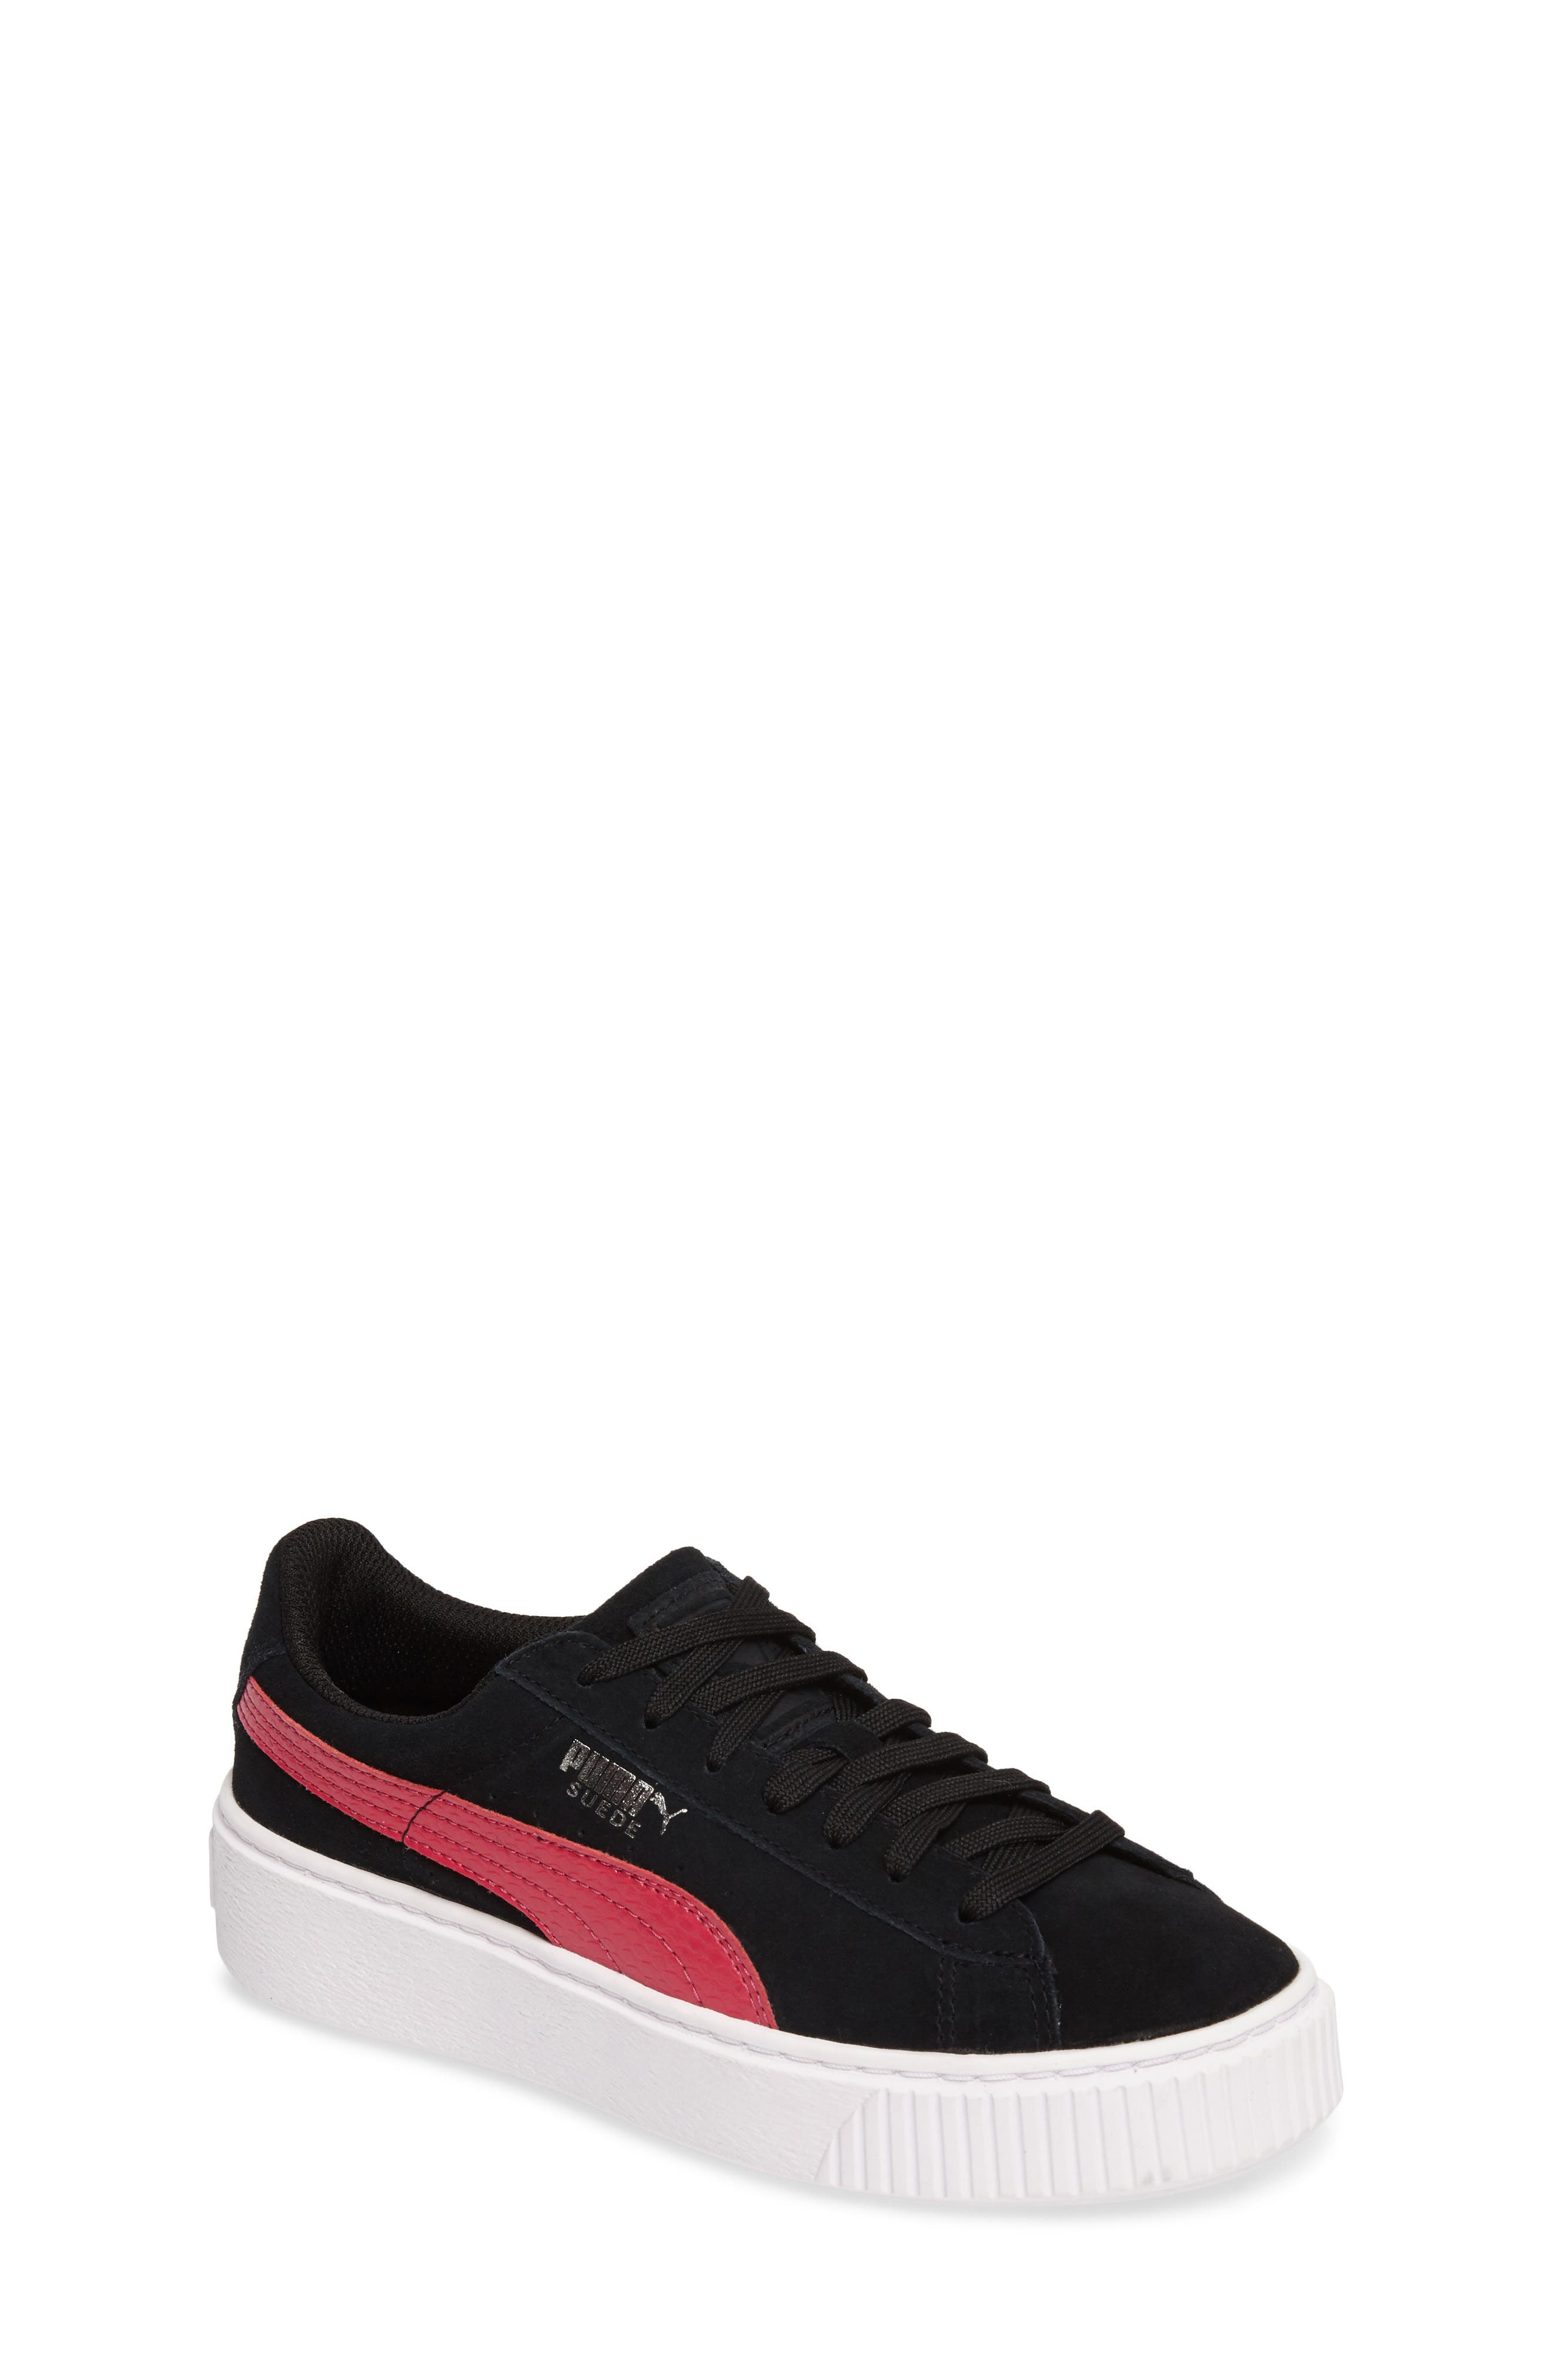 Alternate Image 1 Selected - PUMA Platform Sneaker (Big Kid)